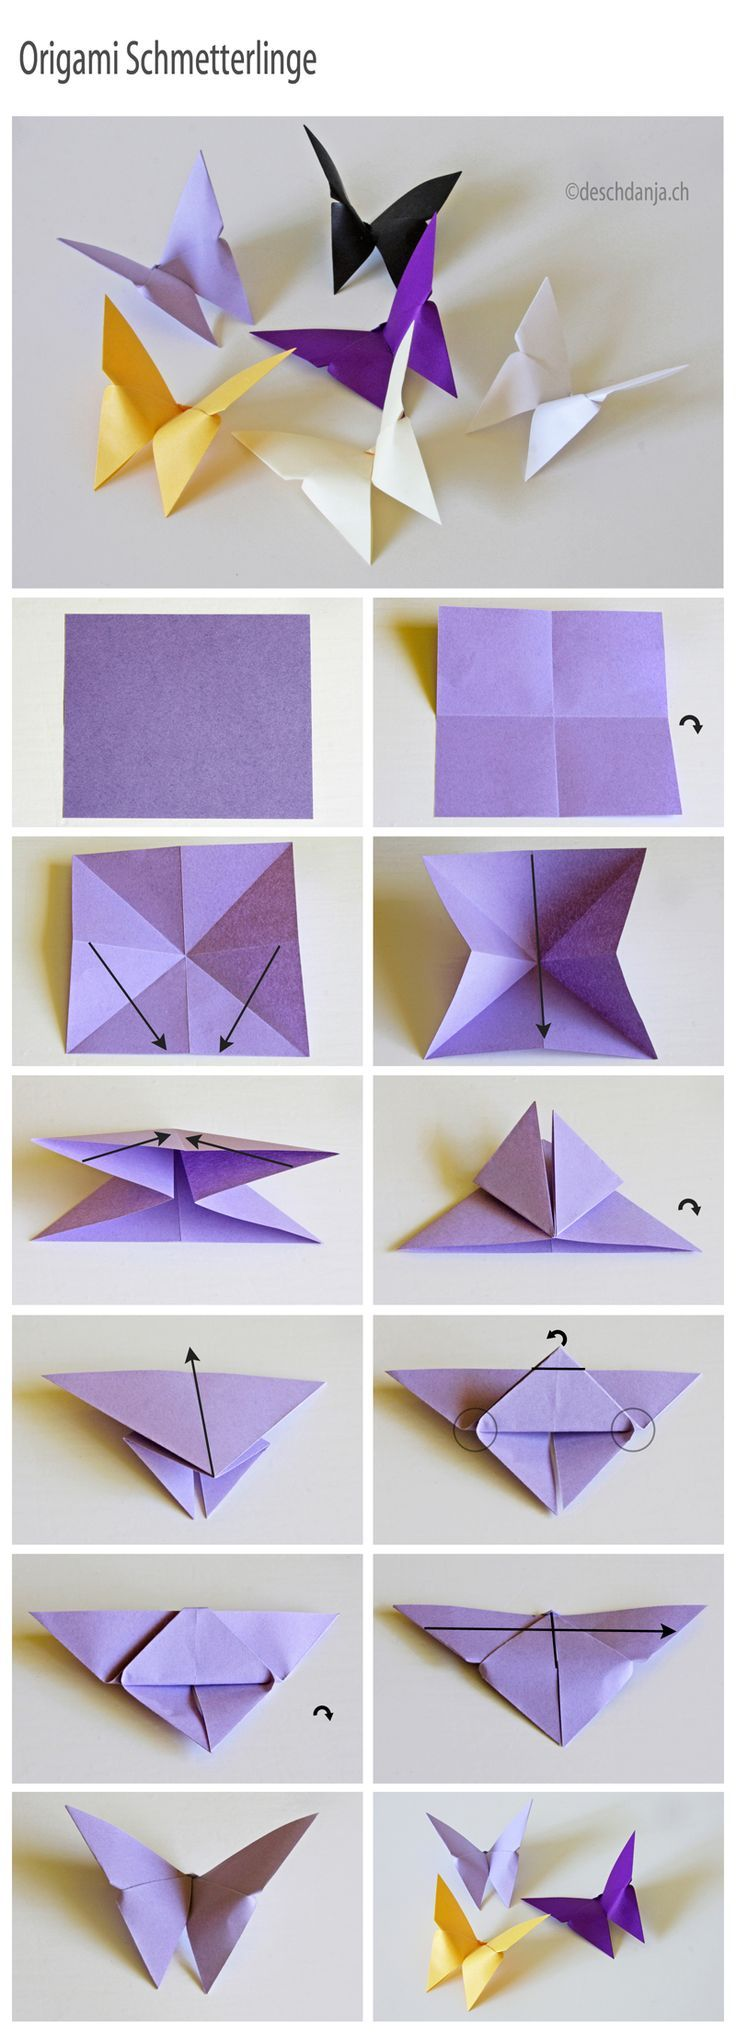 DIY: Origami Schmetterling